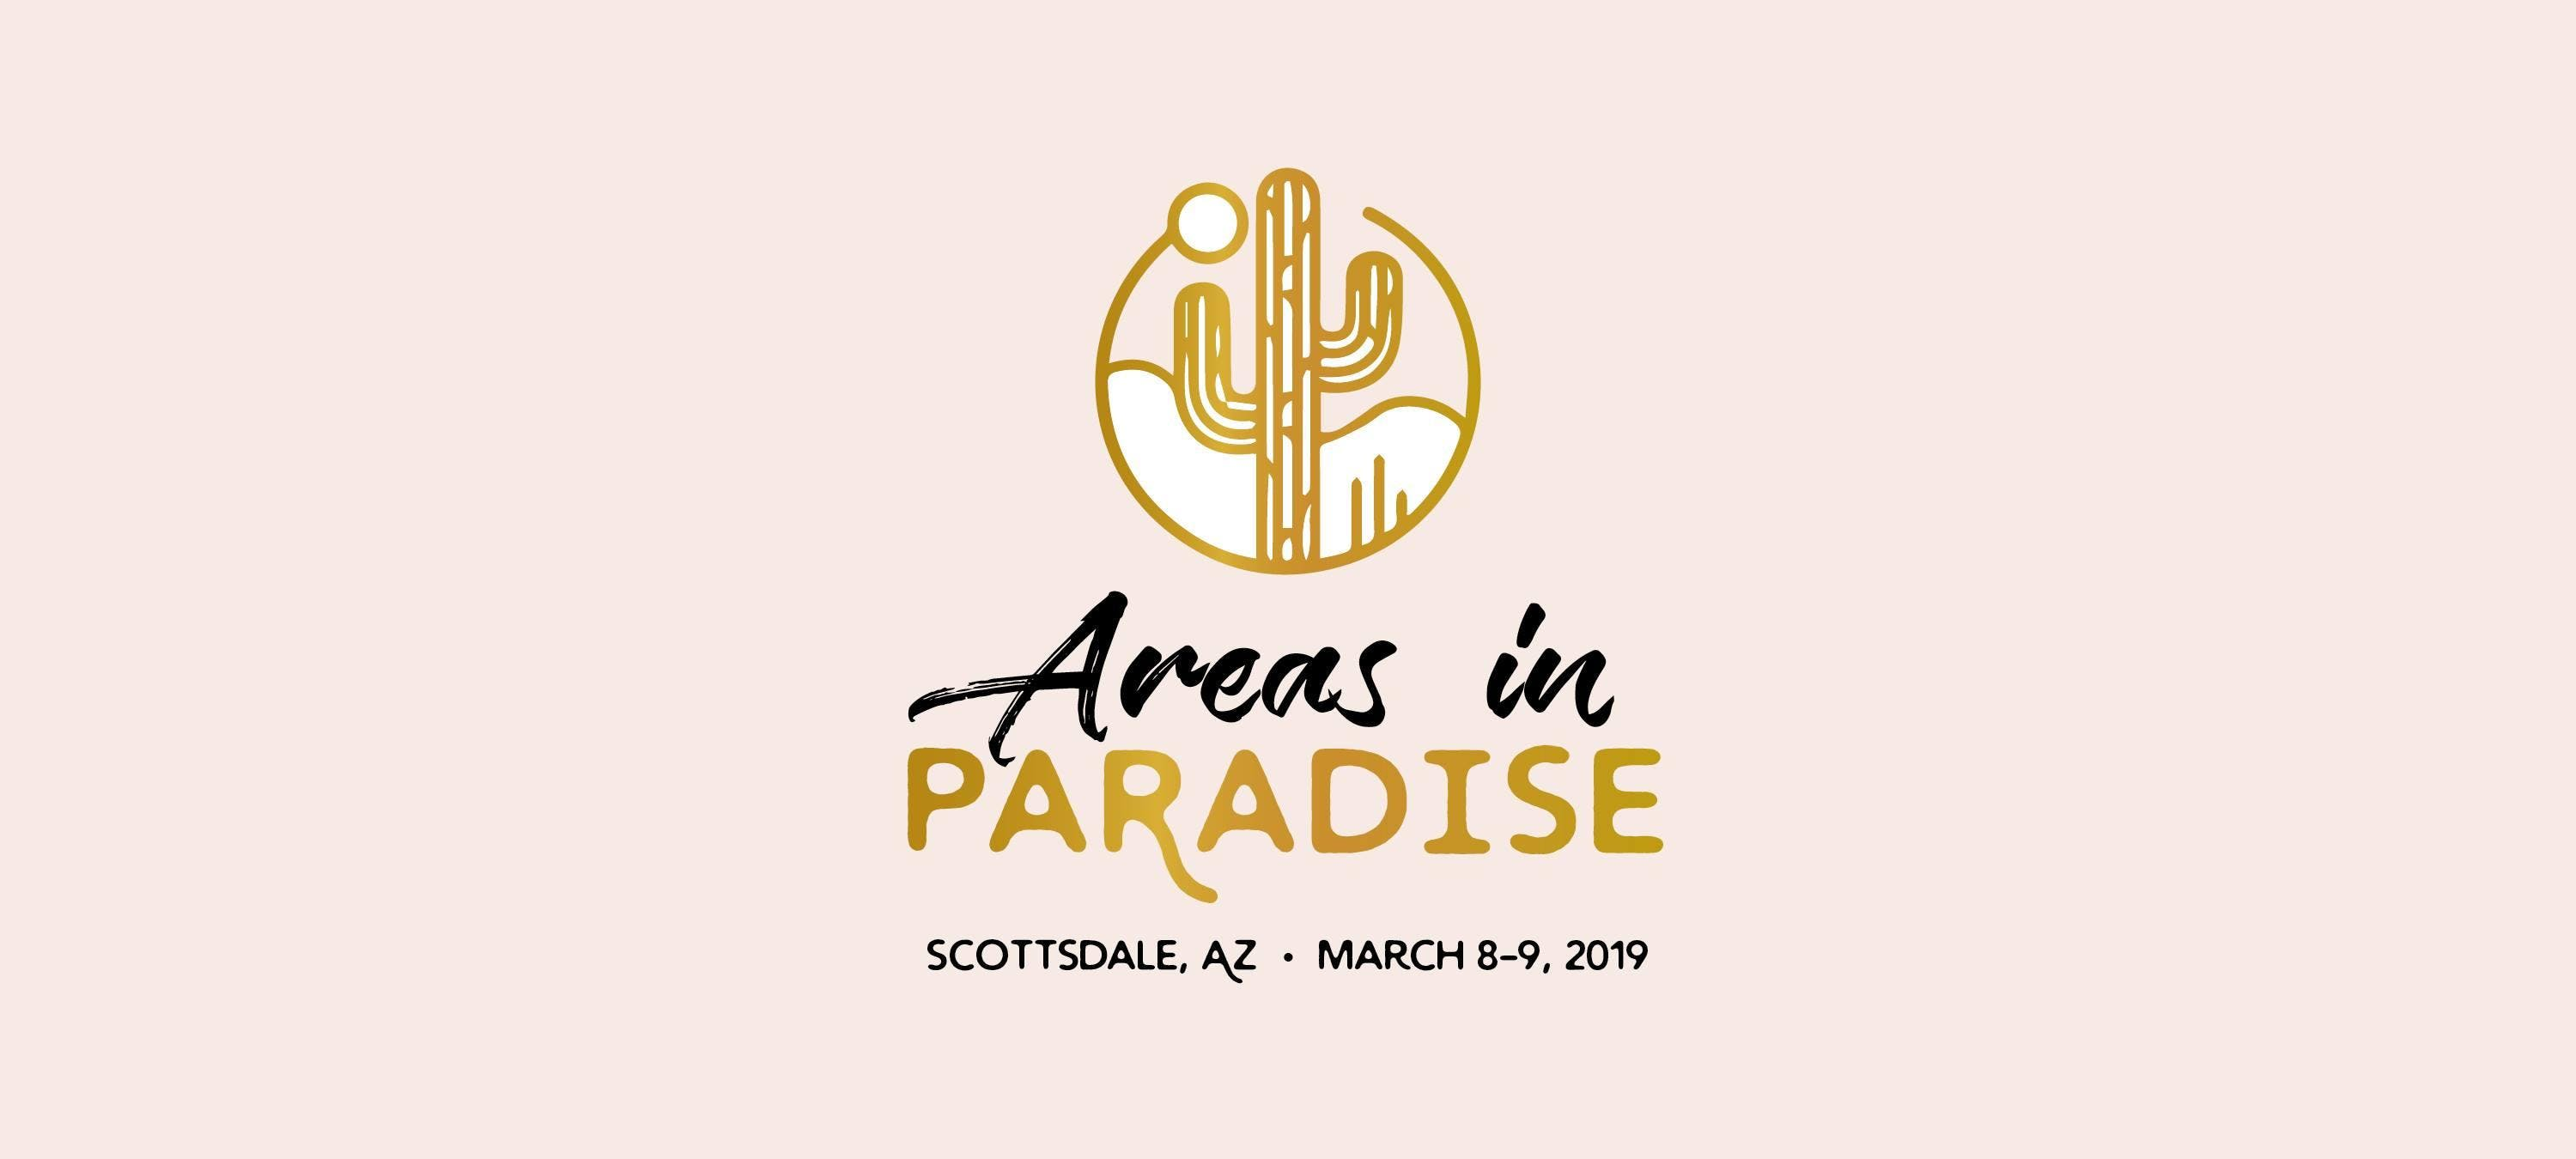 Areas In Paradise 2019